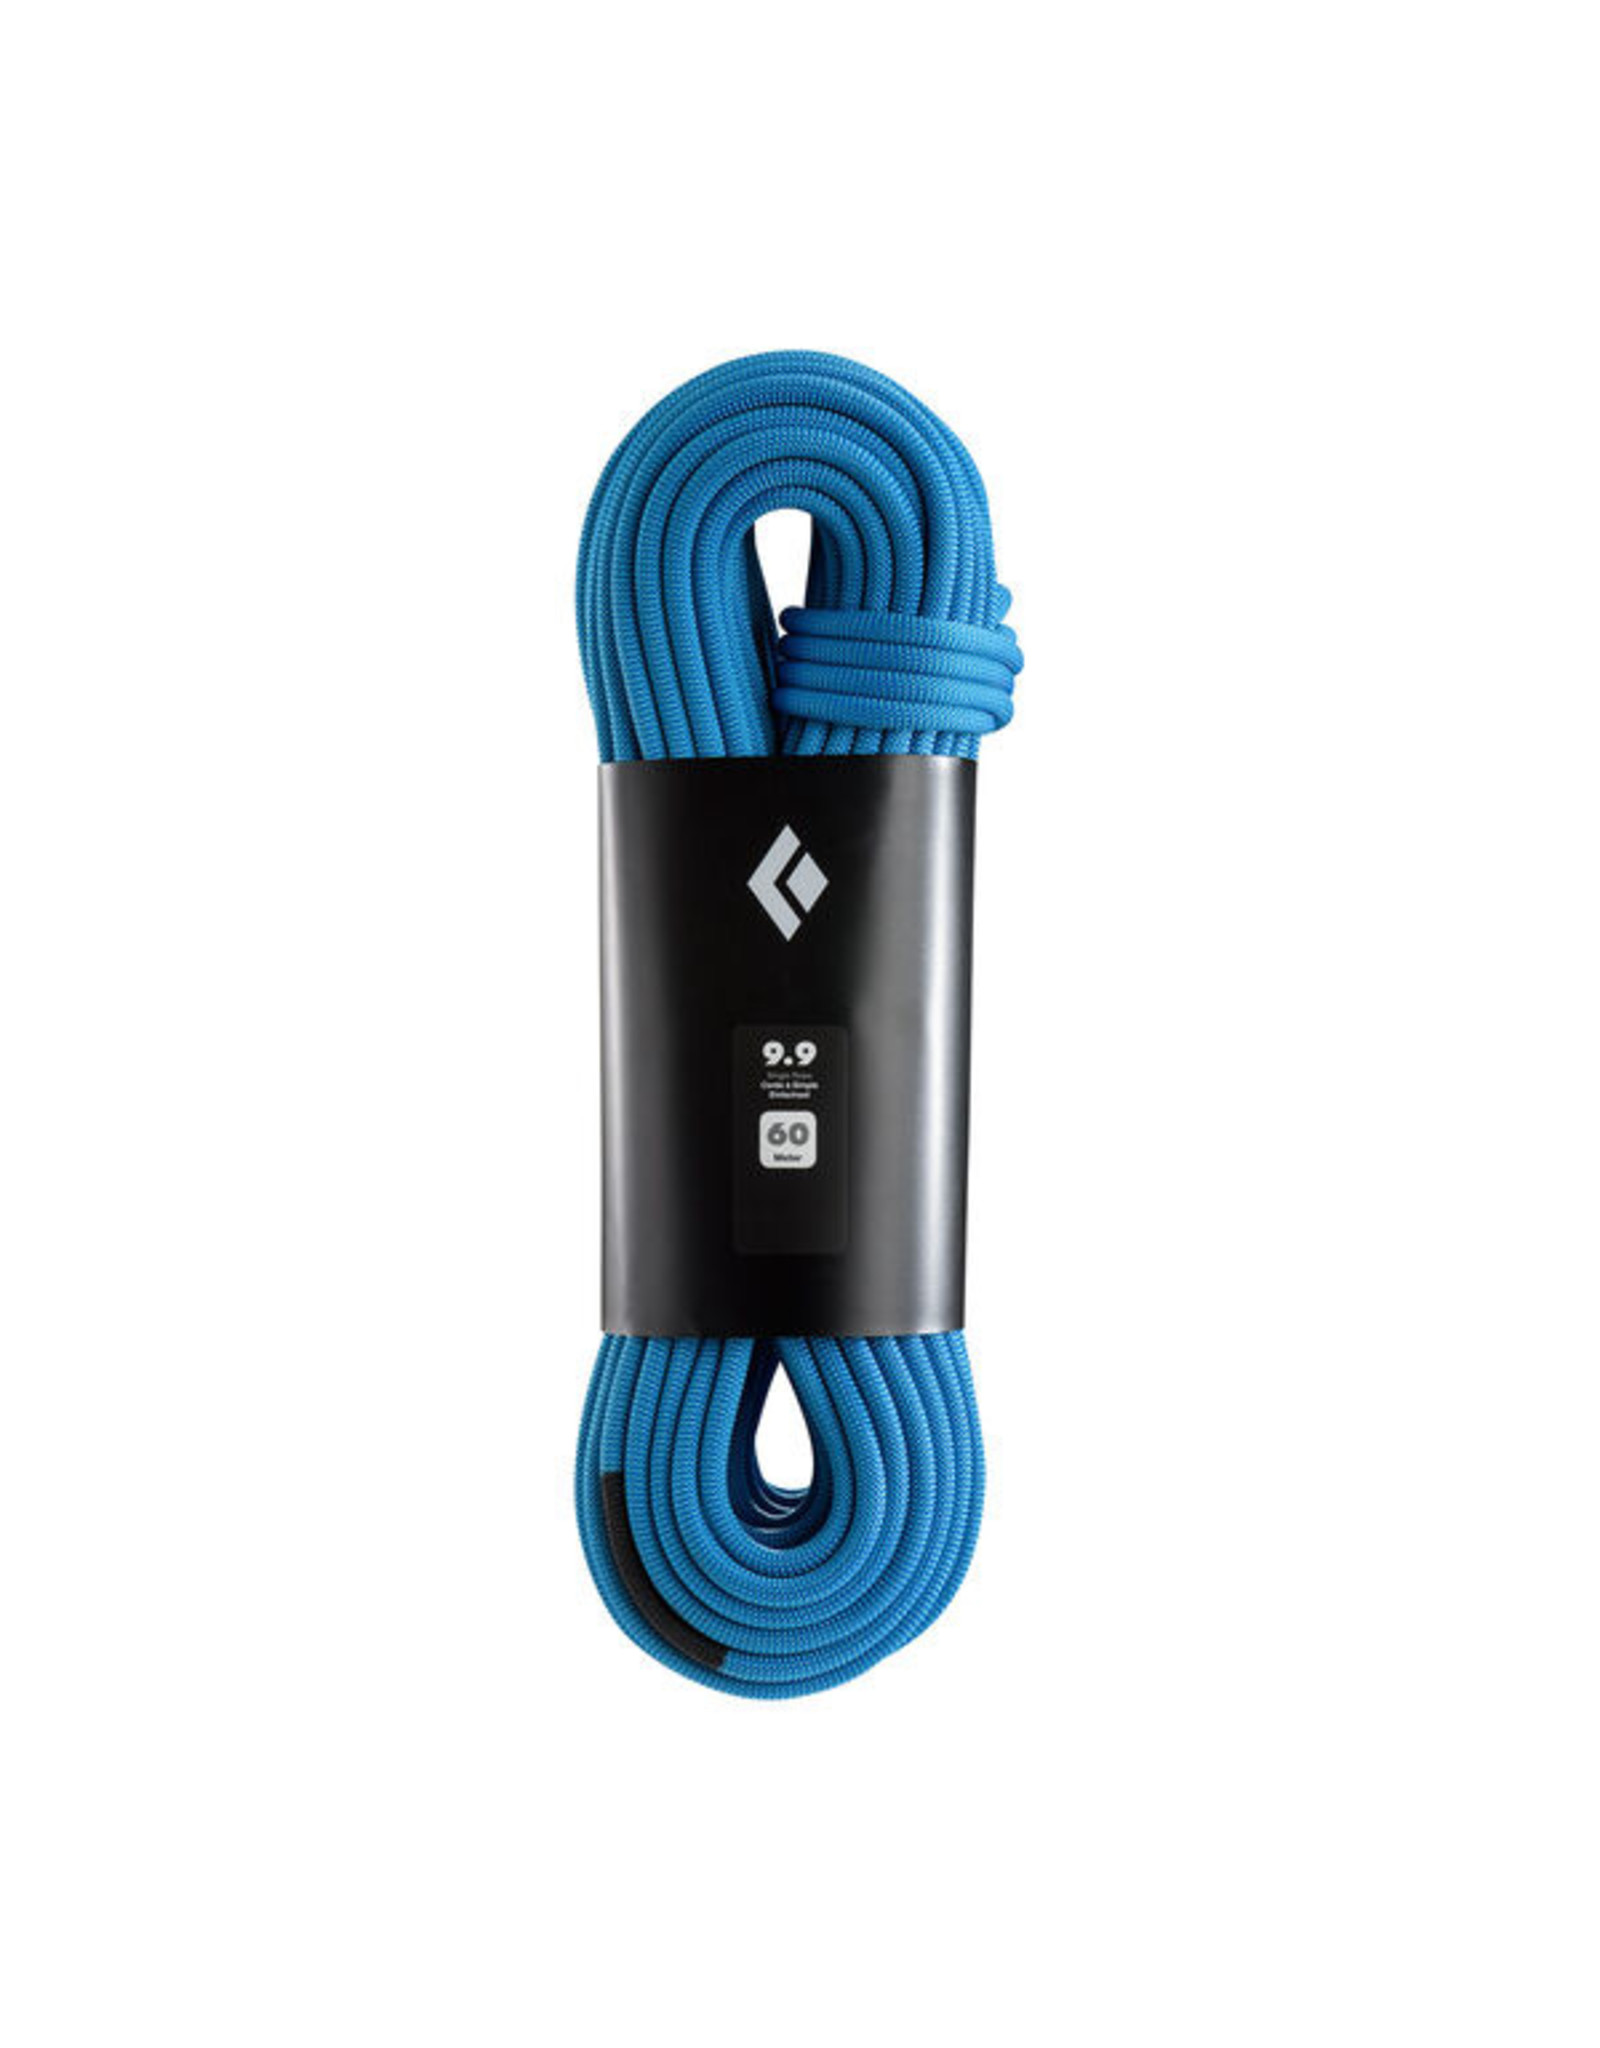 Black Diamond 9.9 Dynamic Rope - 60m